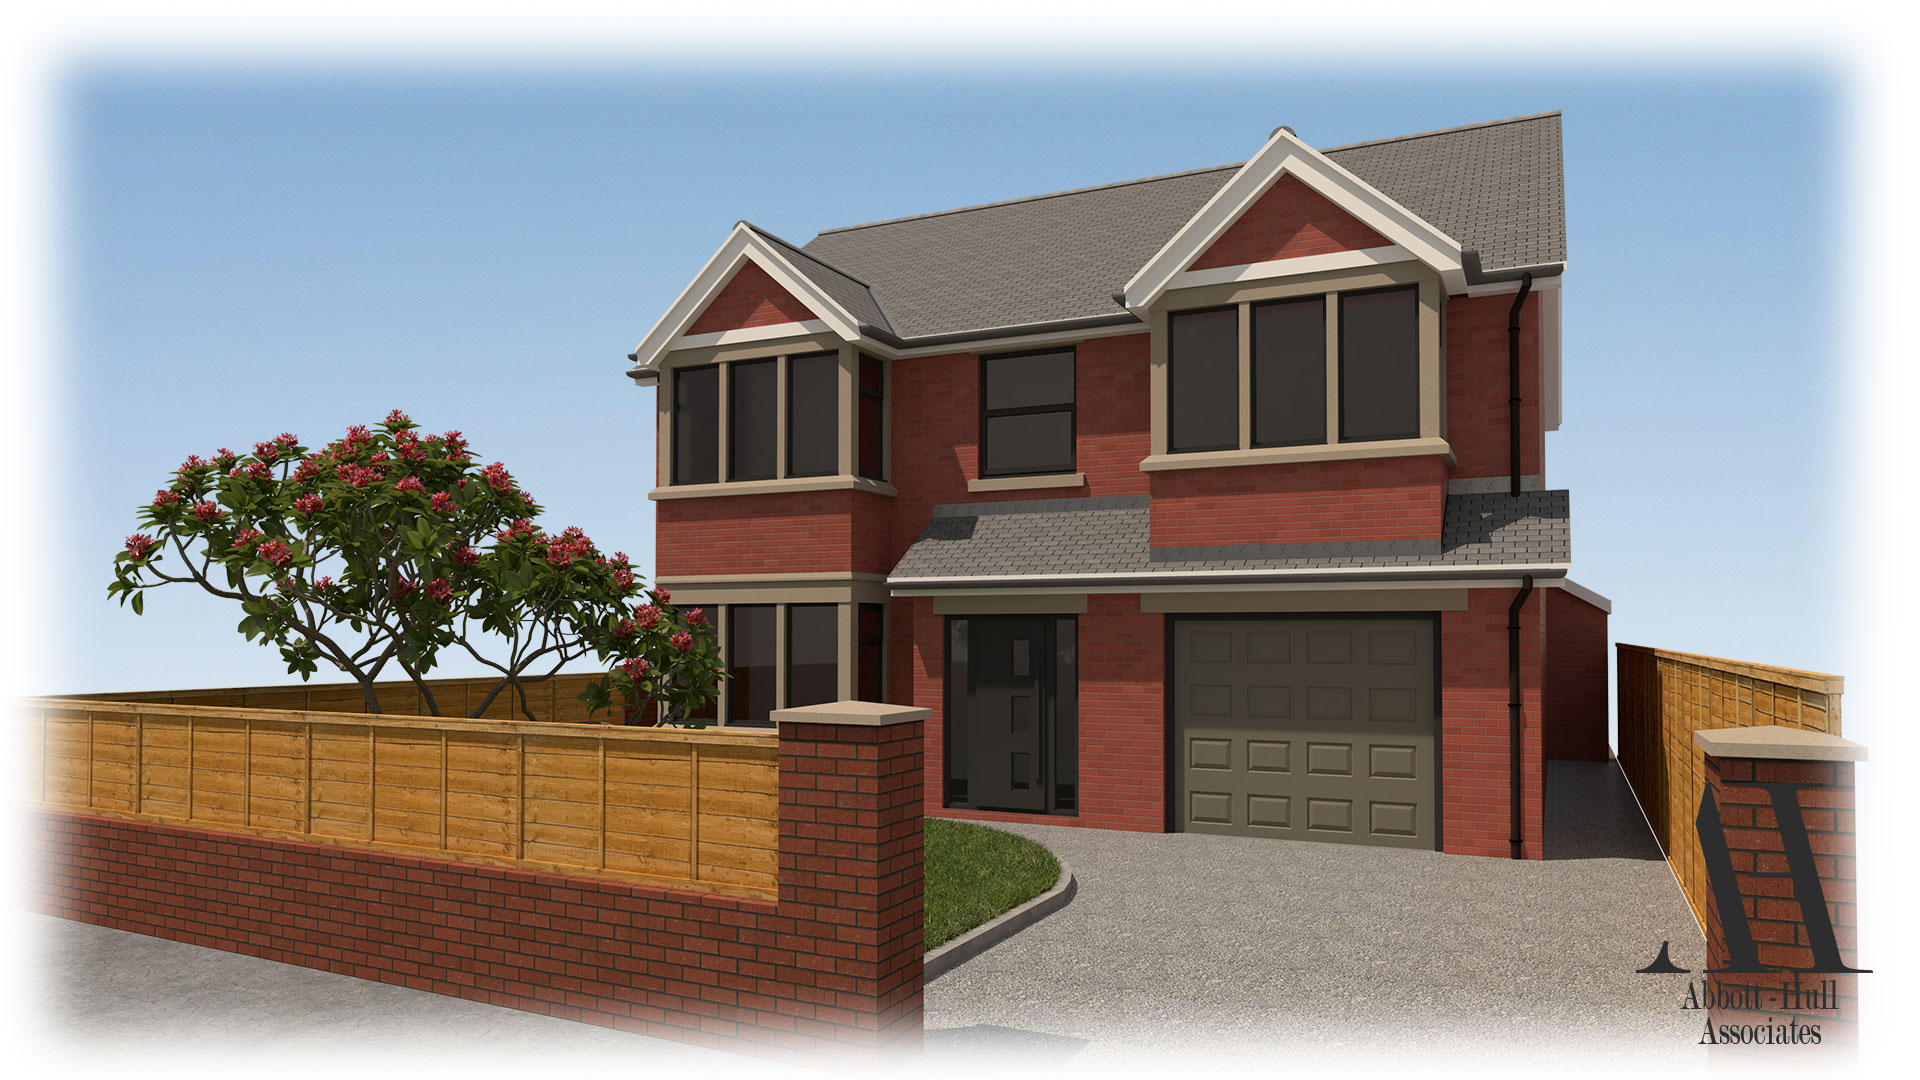 Marsh Road, Thornton-Cleveleys, House Extension - Visual A